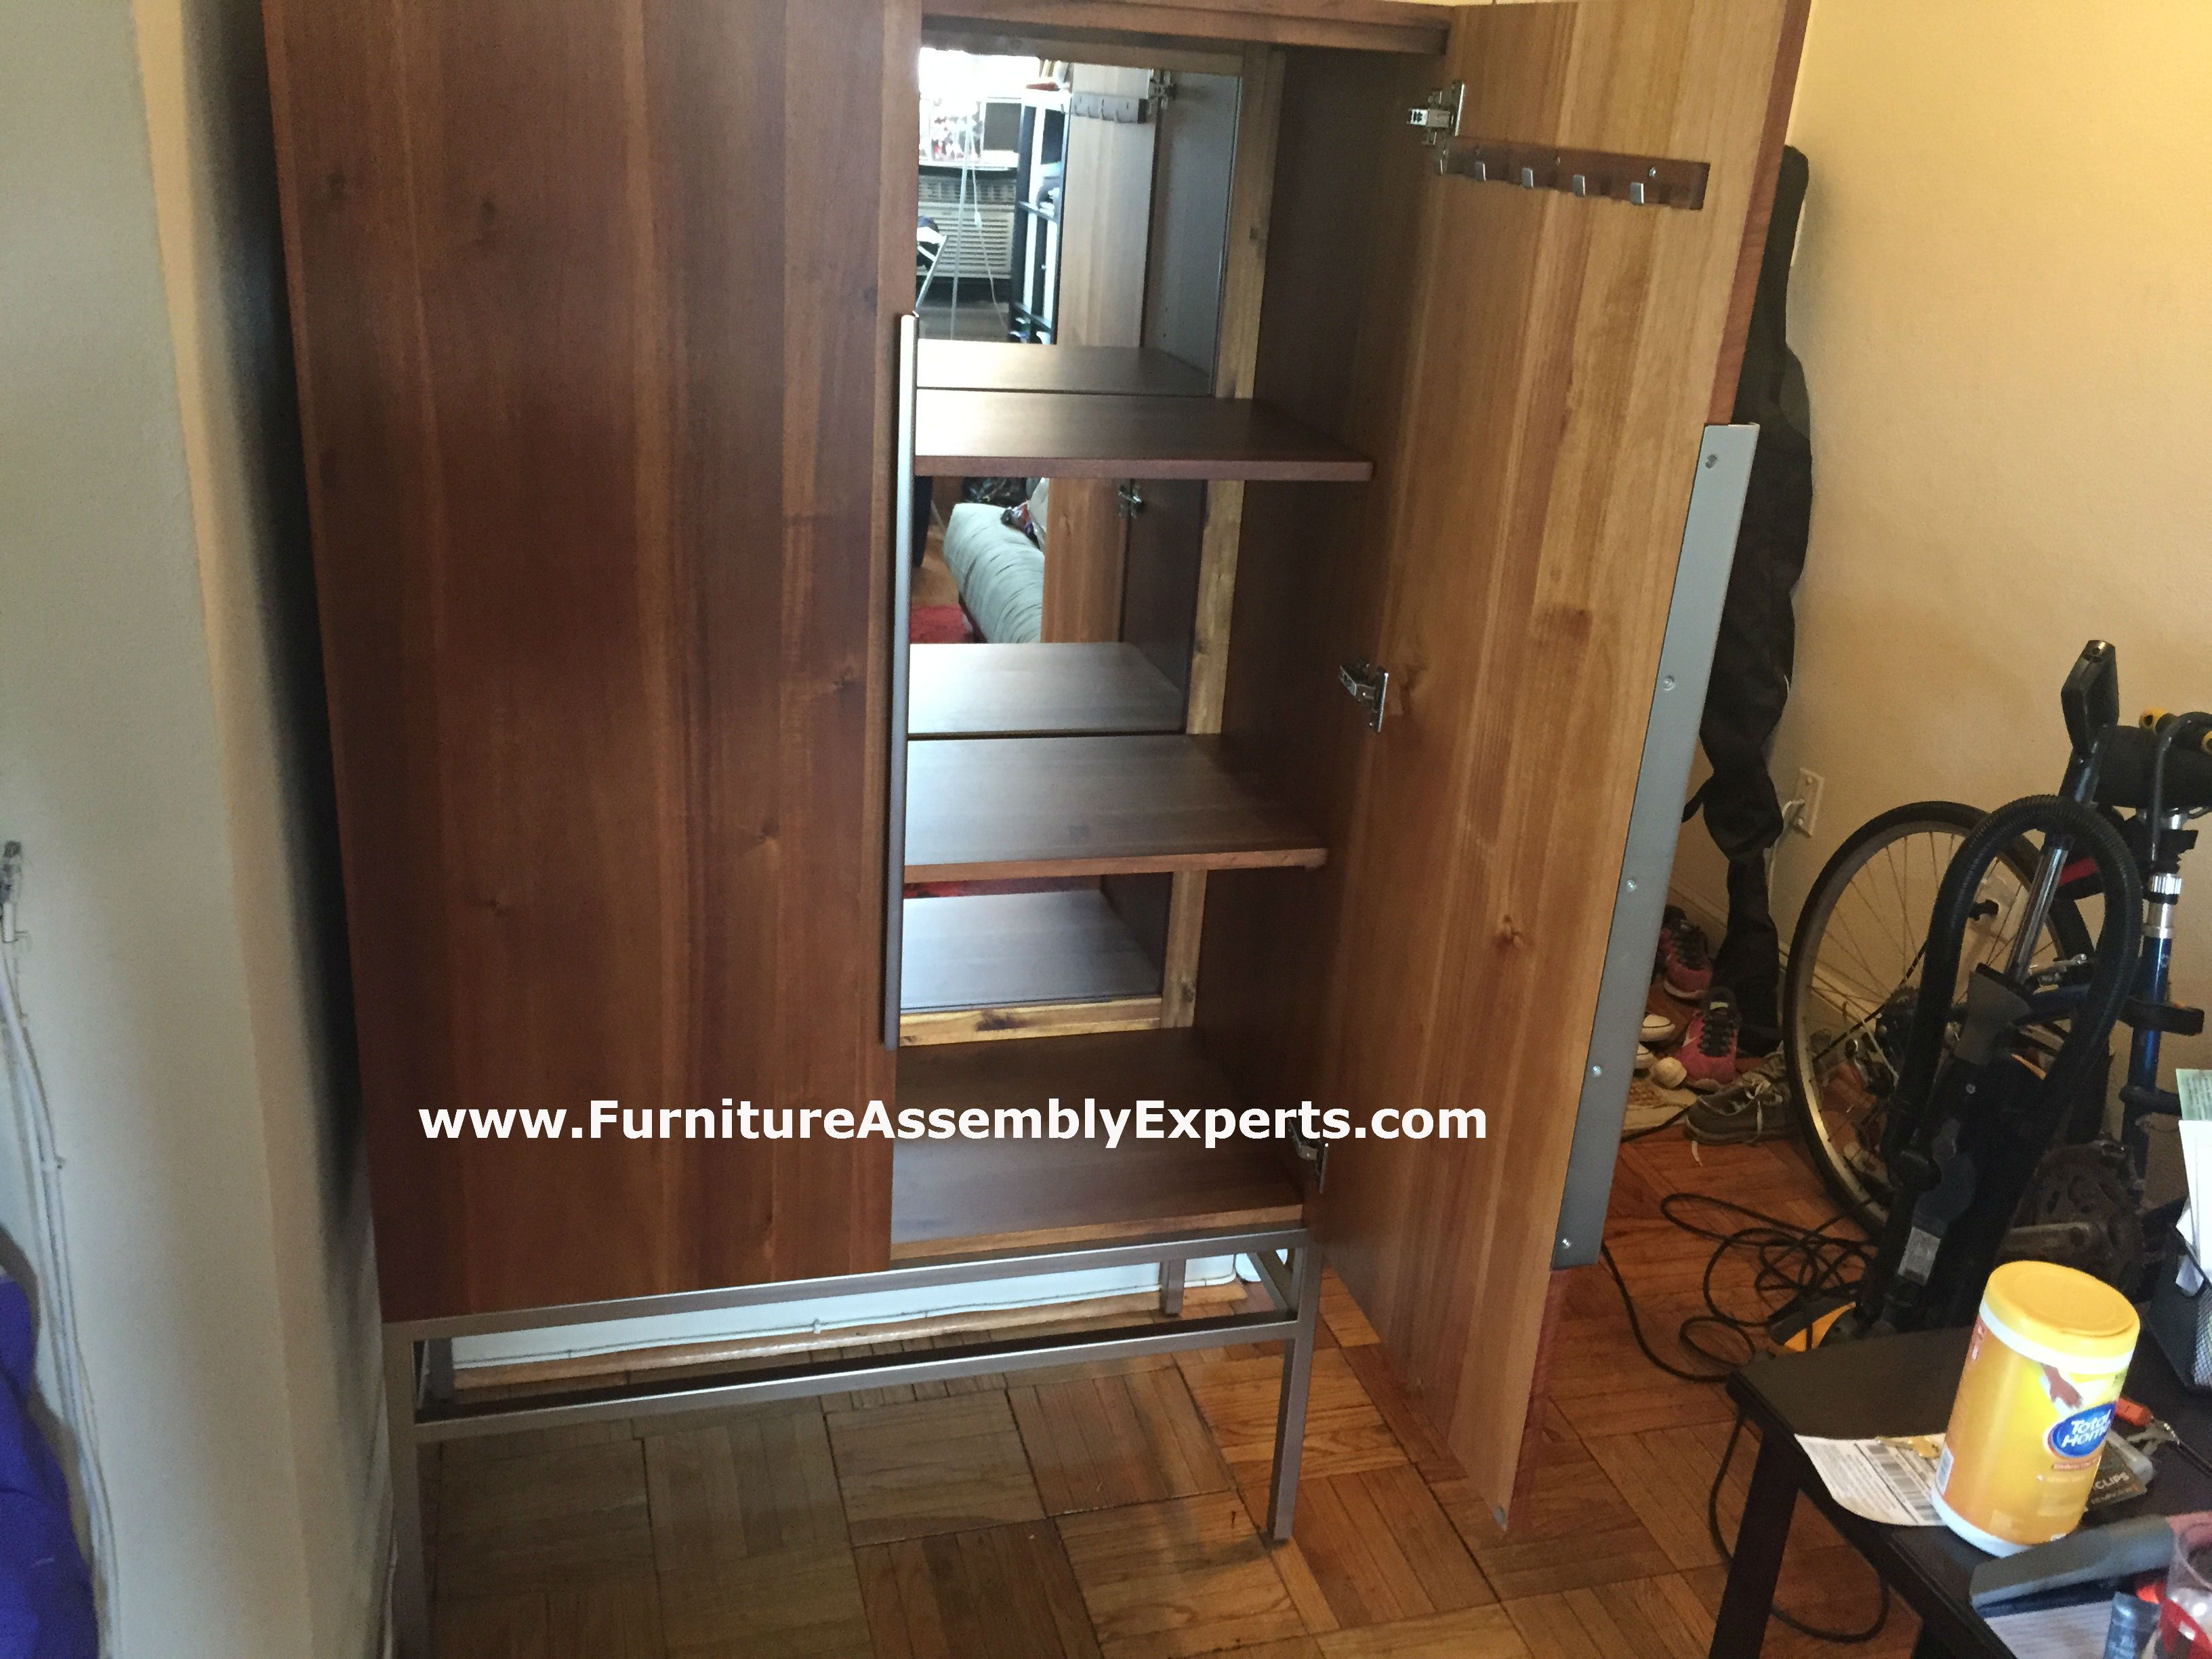 Muse Cabinet Assembled In Bethesda MD By Furniture Assembly Experts LLC